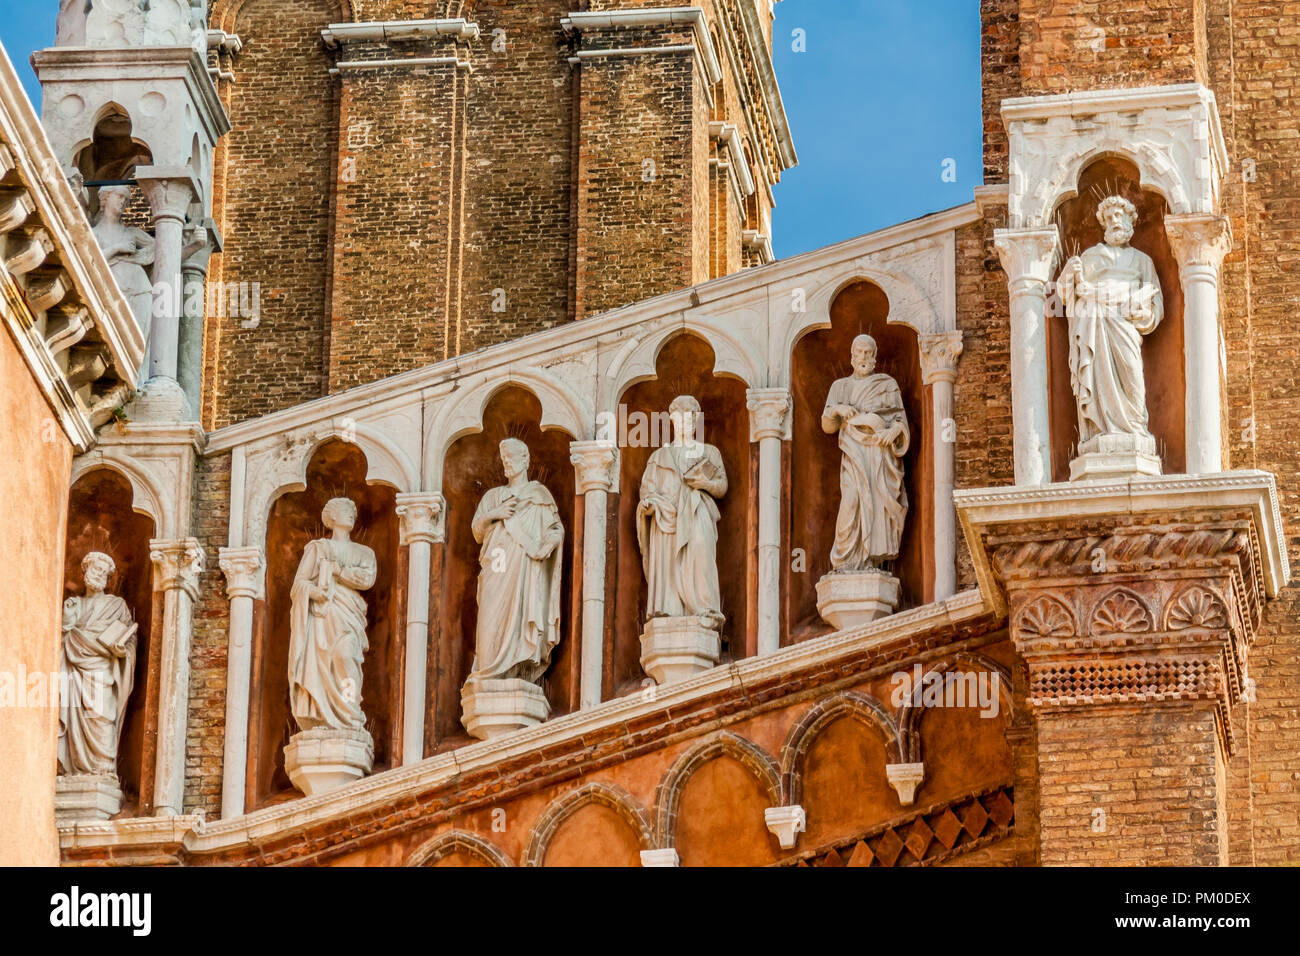 Statues on the facade of the Church of Madonna de l'Orto, Venice, Italy. - Stock Image